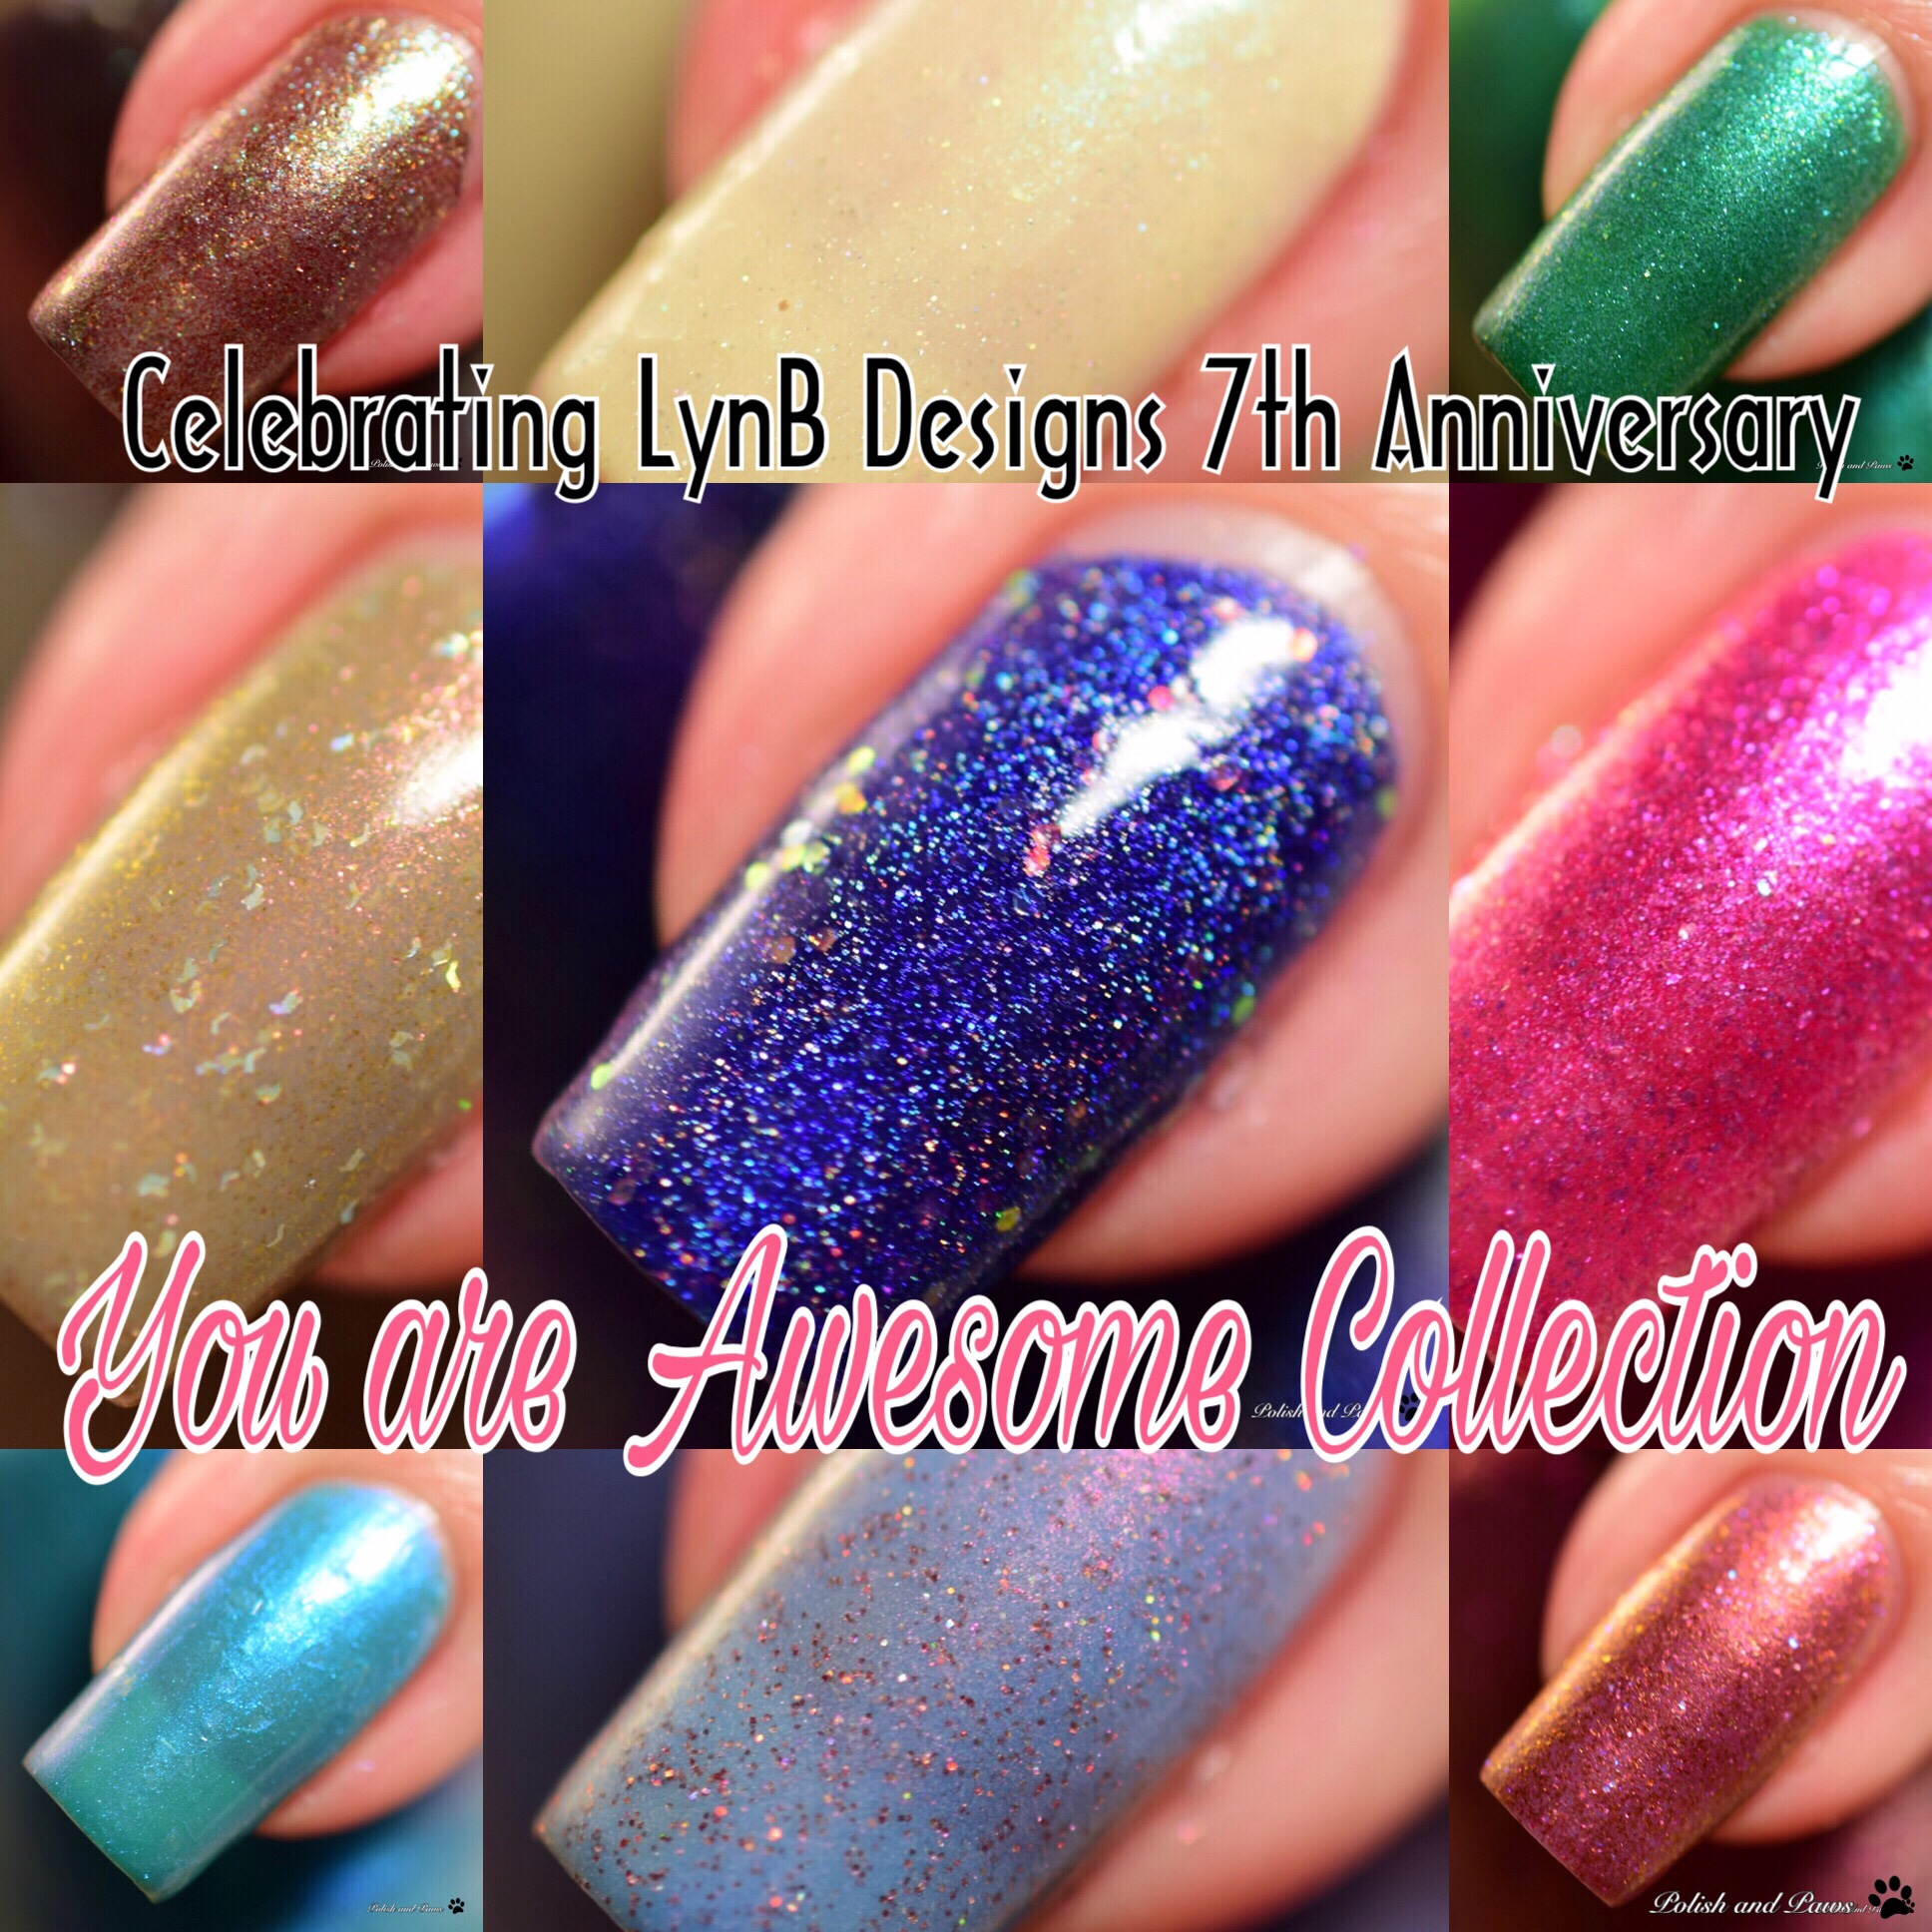 LynB Designs You Are Awesome 7th Anniversary Collection